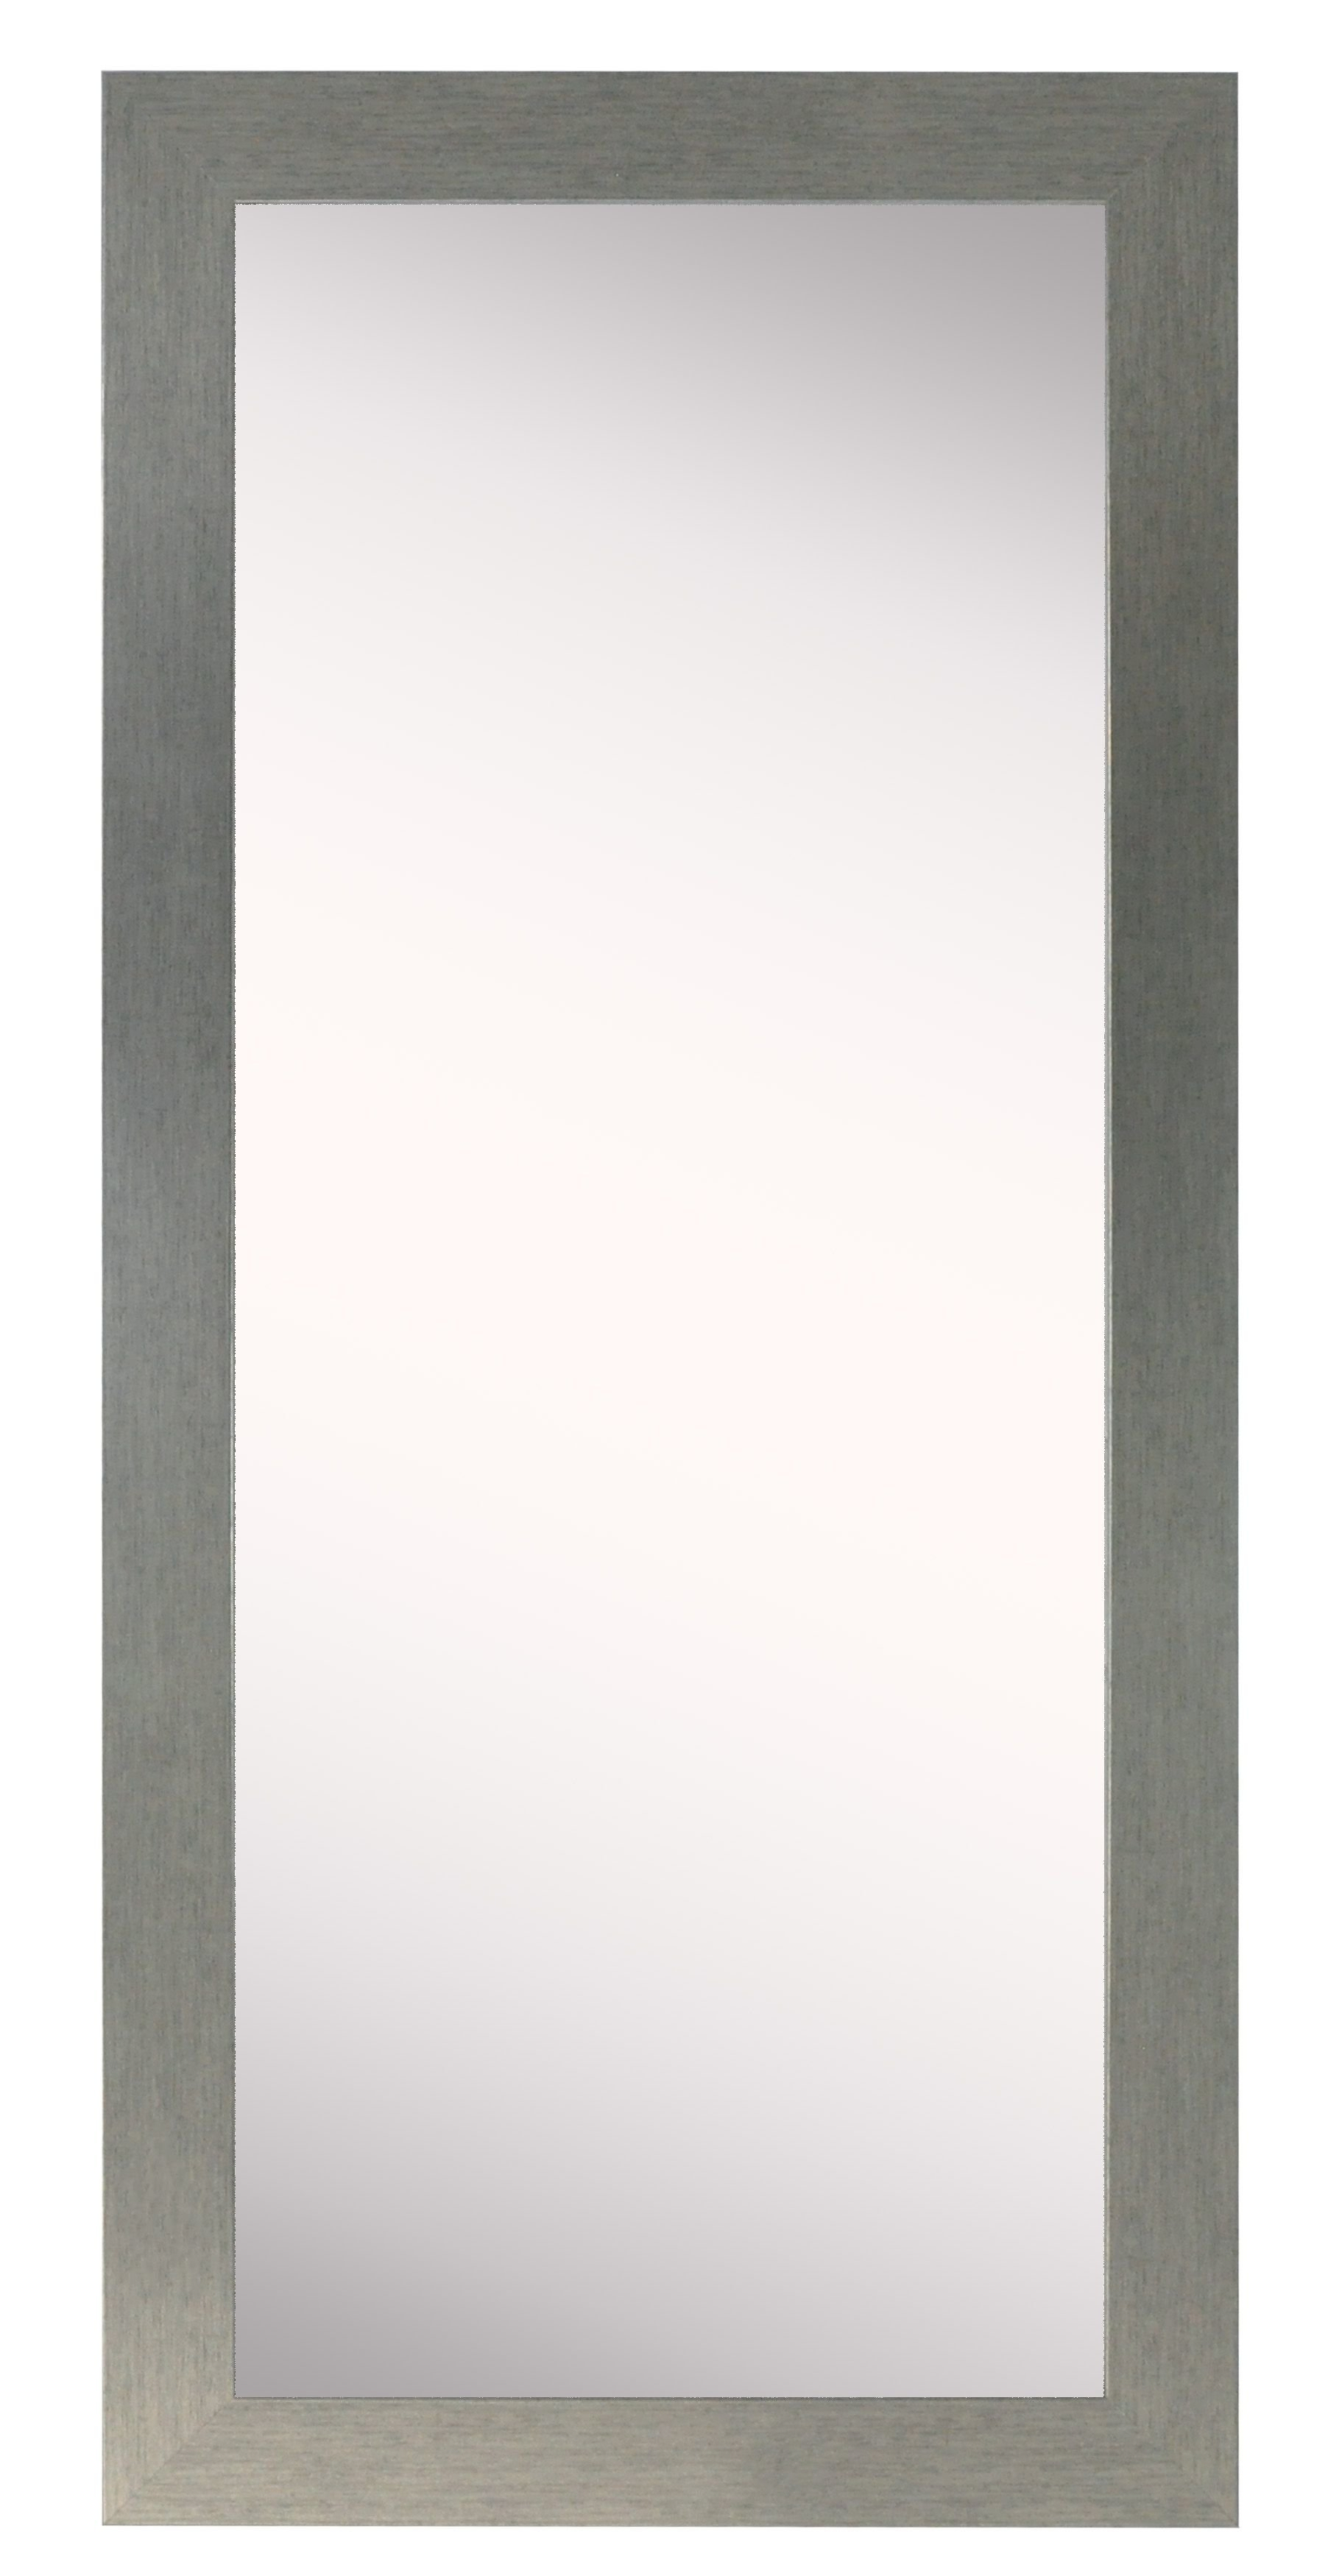 Modern & Contemporary Modern Large Wall Mirror | Allmodern With Regard To Pennsburg Rectangle Wall Mirrors (Image 6 of 20)